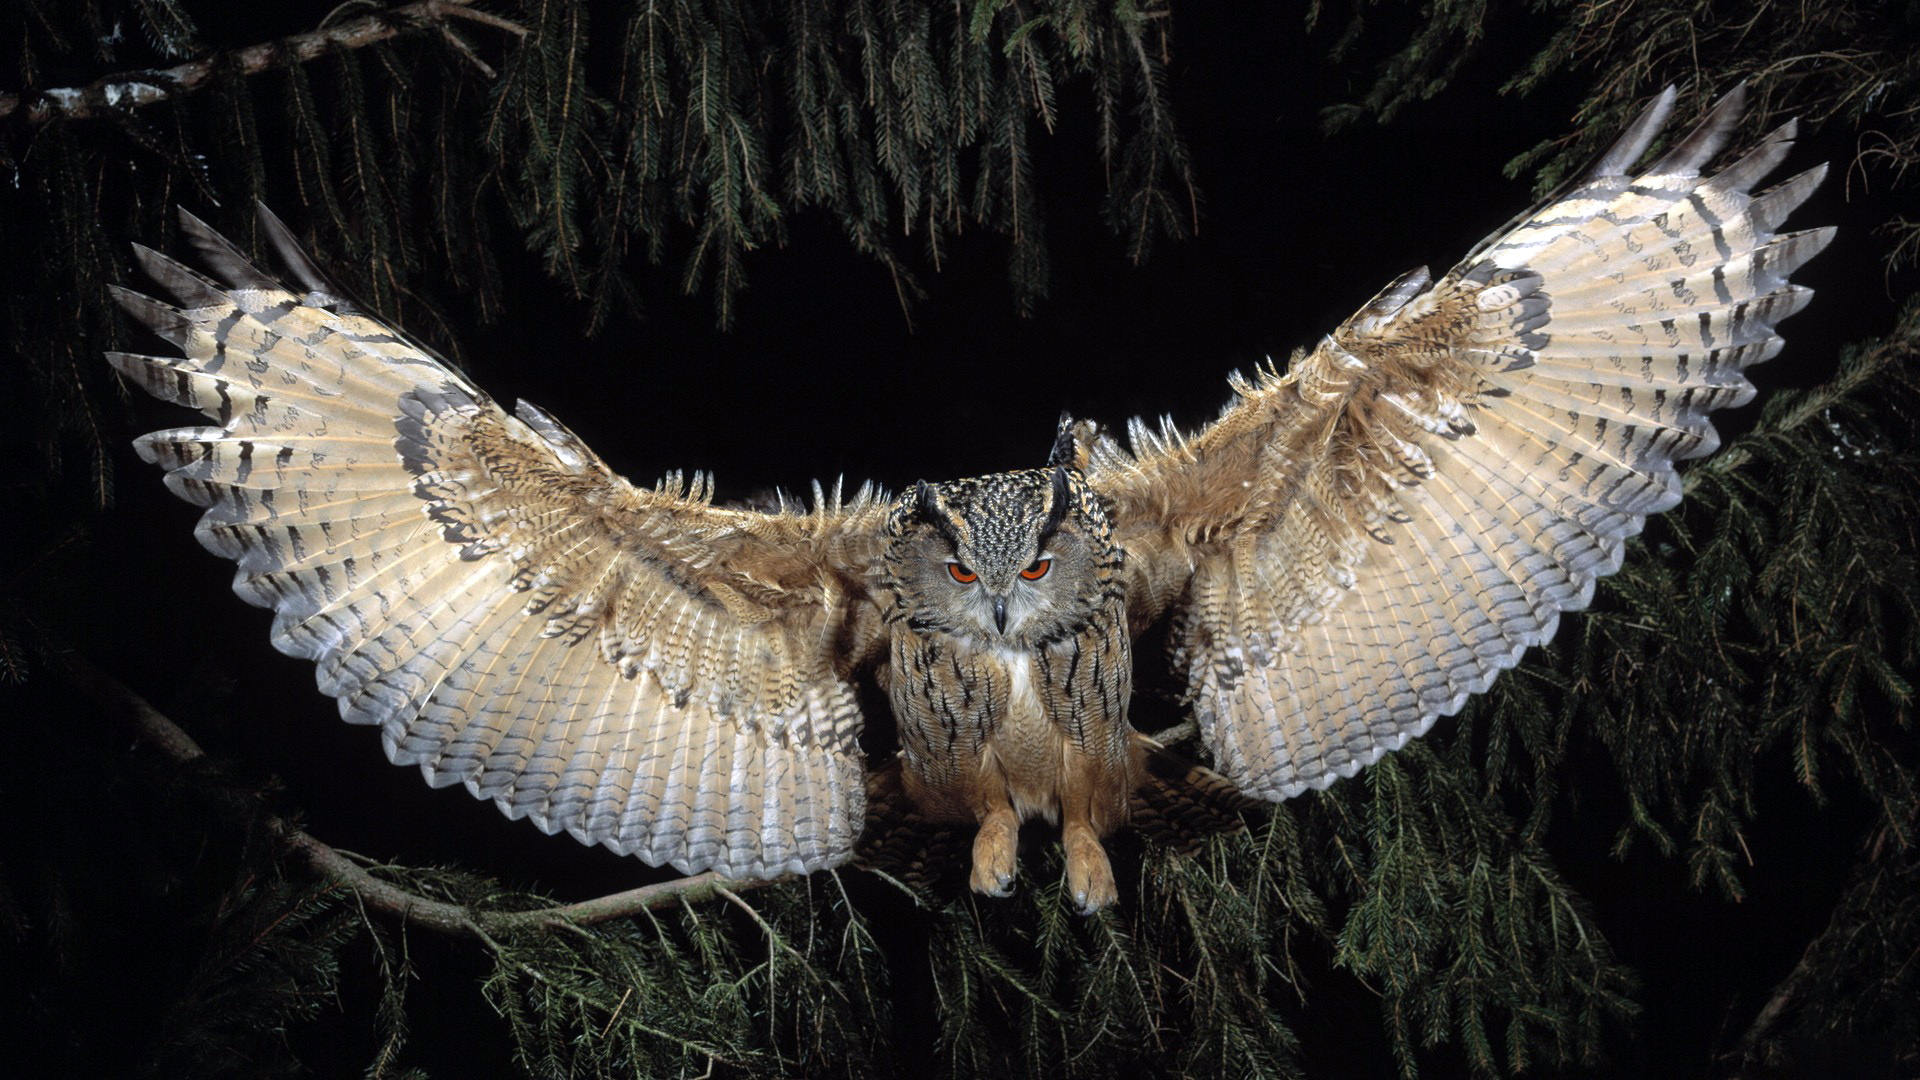 great horned owl, hd birds, 4k wallpapers, images, backgrounds